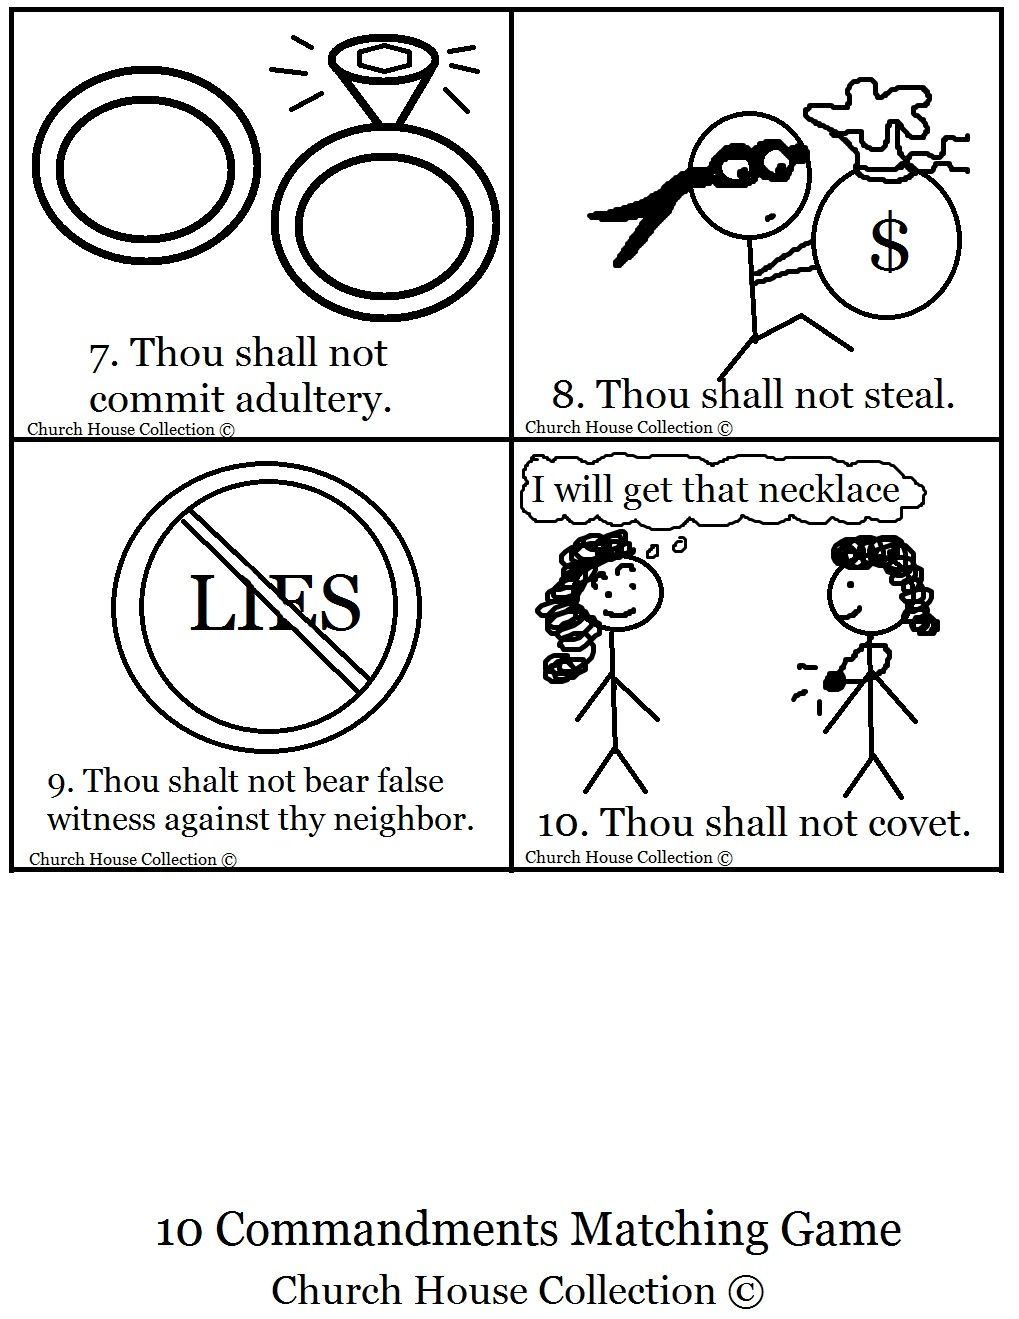 10 Commandments Bible Matching Game Printable 10 Commandments